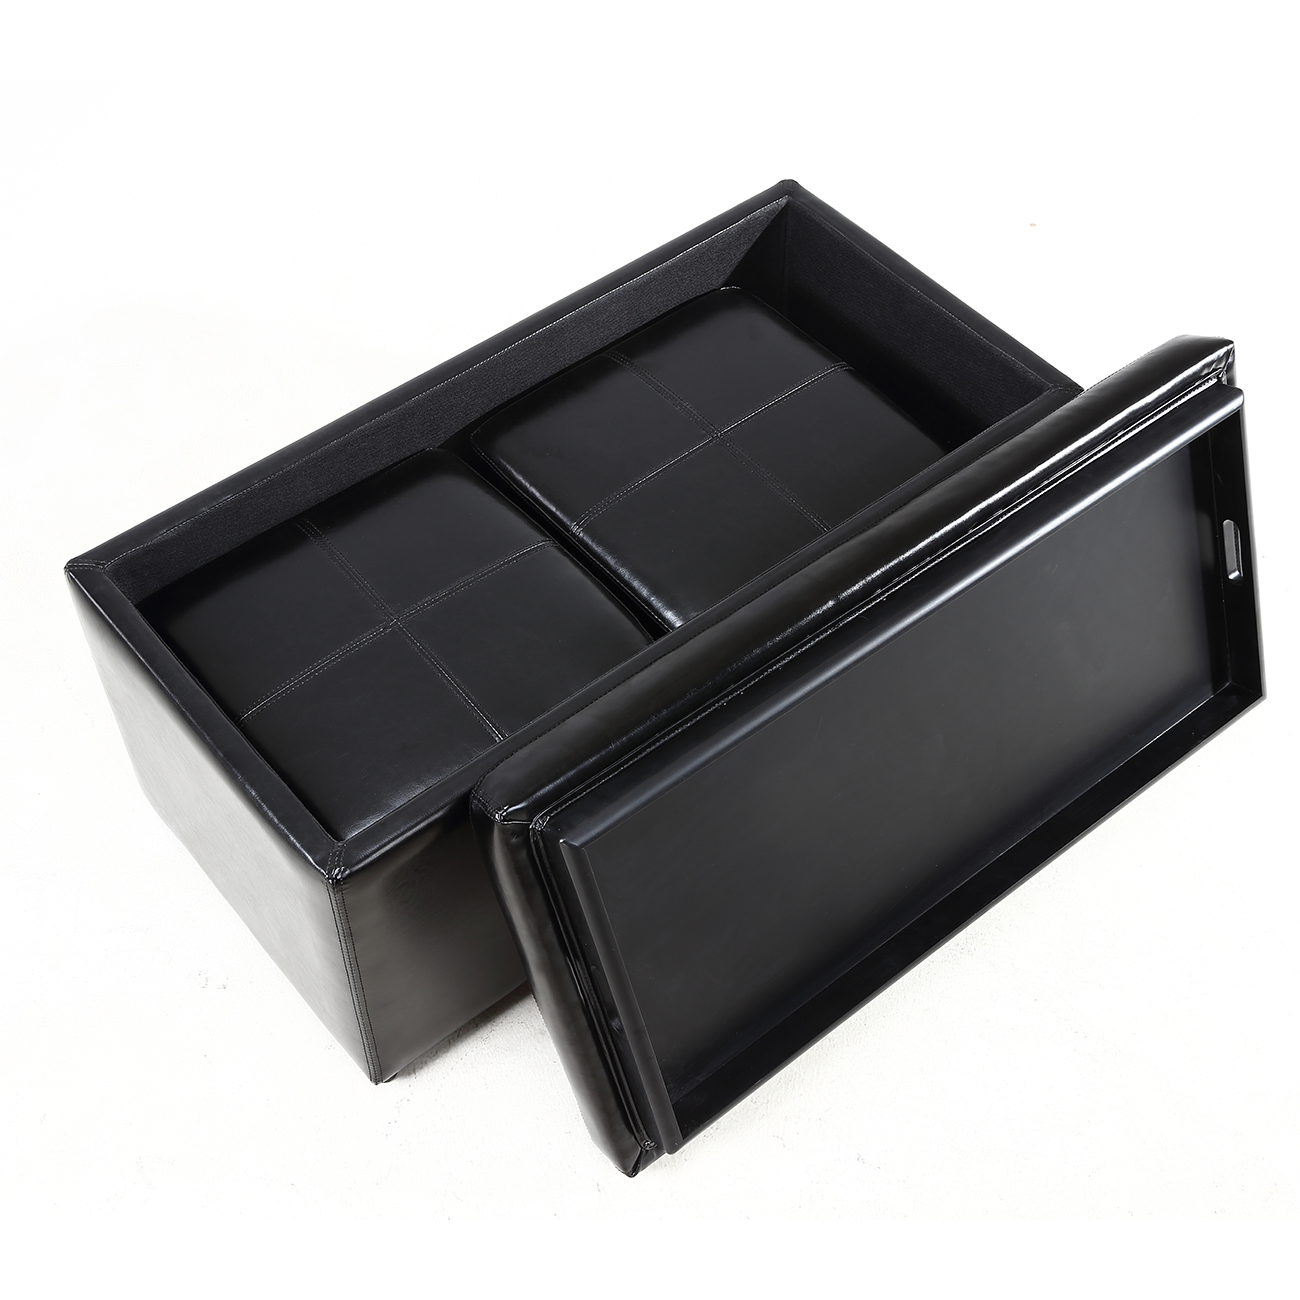 014 hg 31905 bk 5 Leather Coffee Table With Storage And Trays